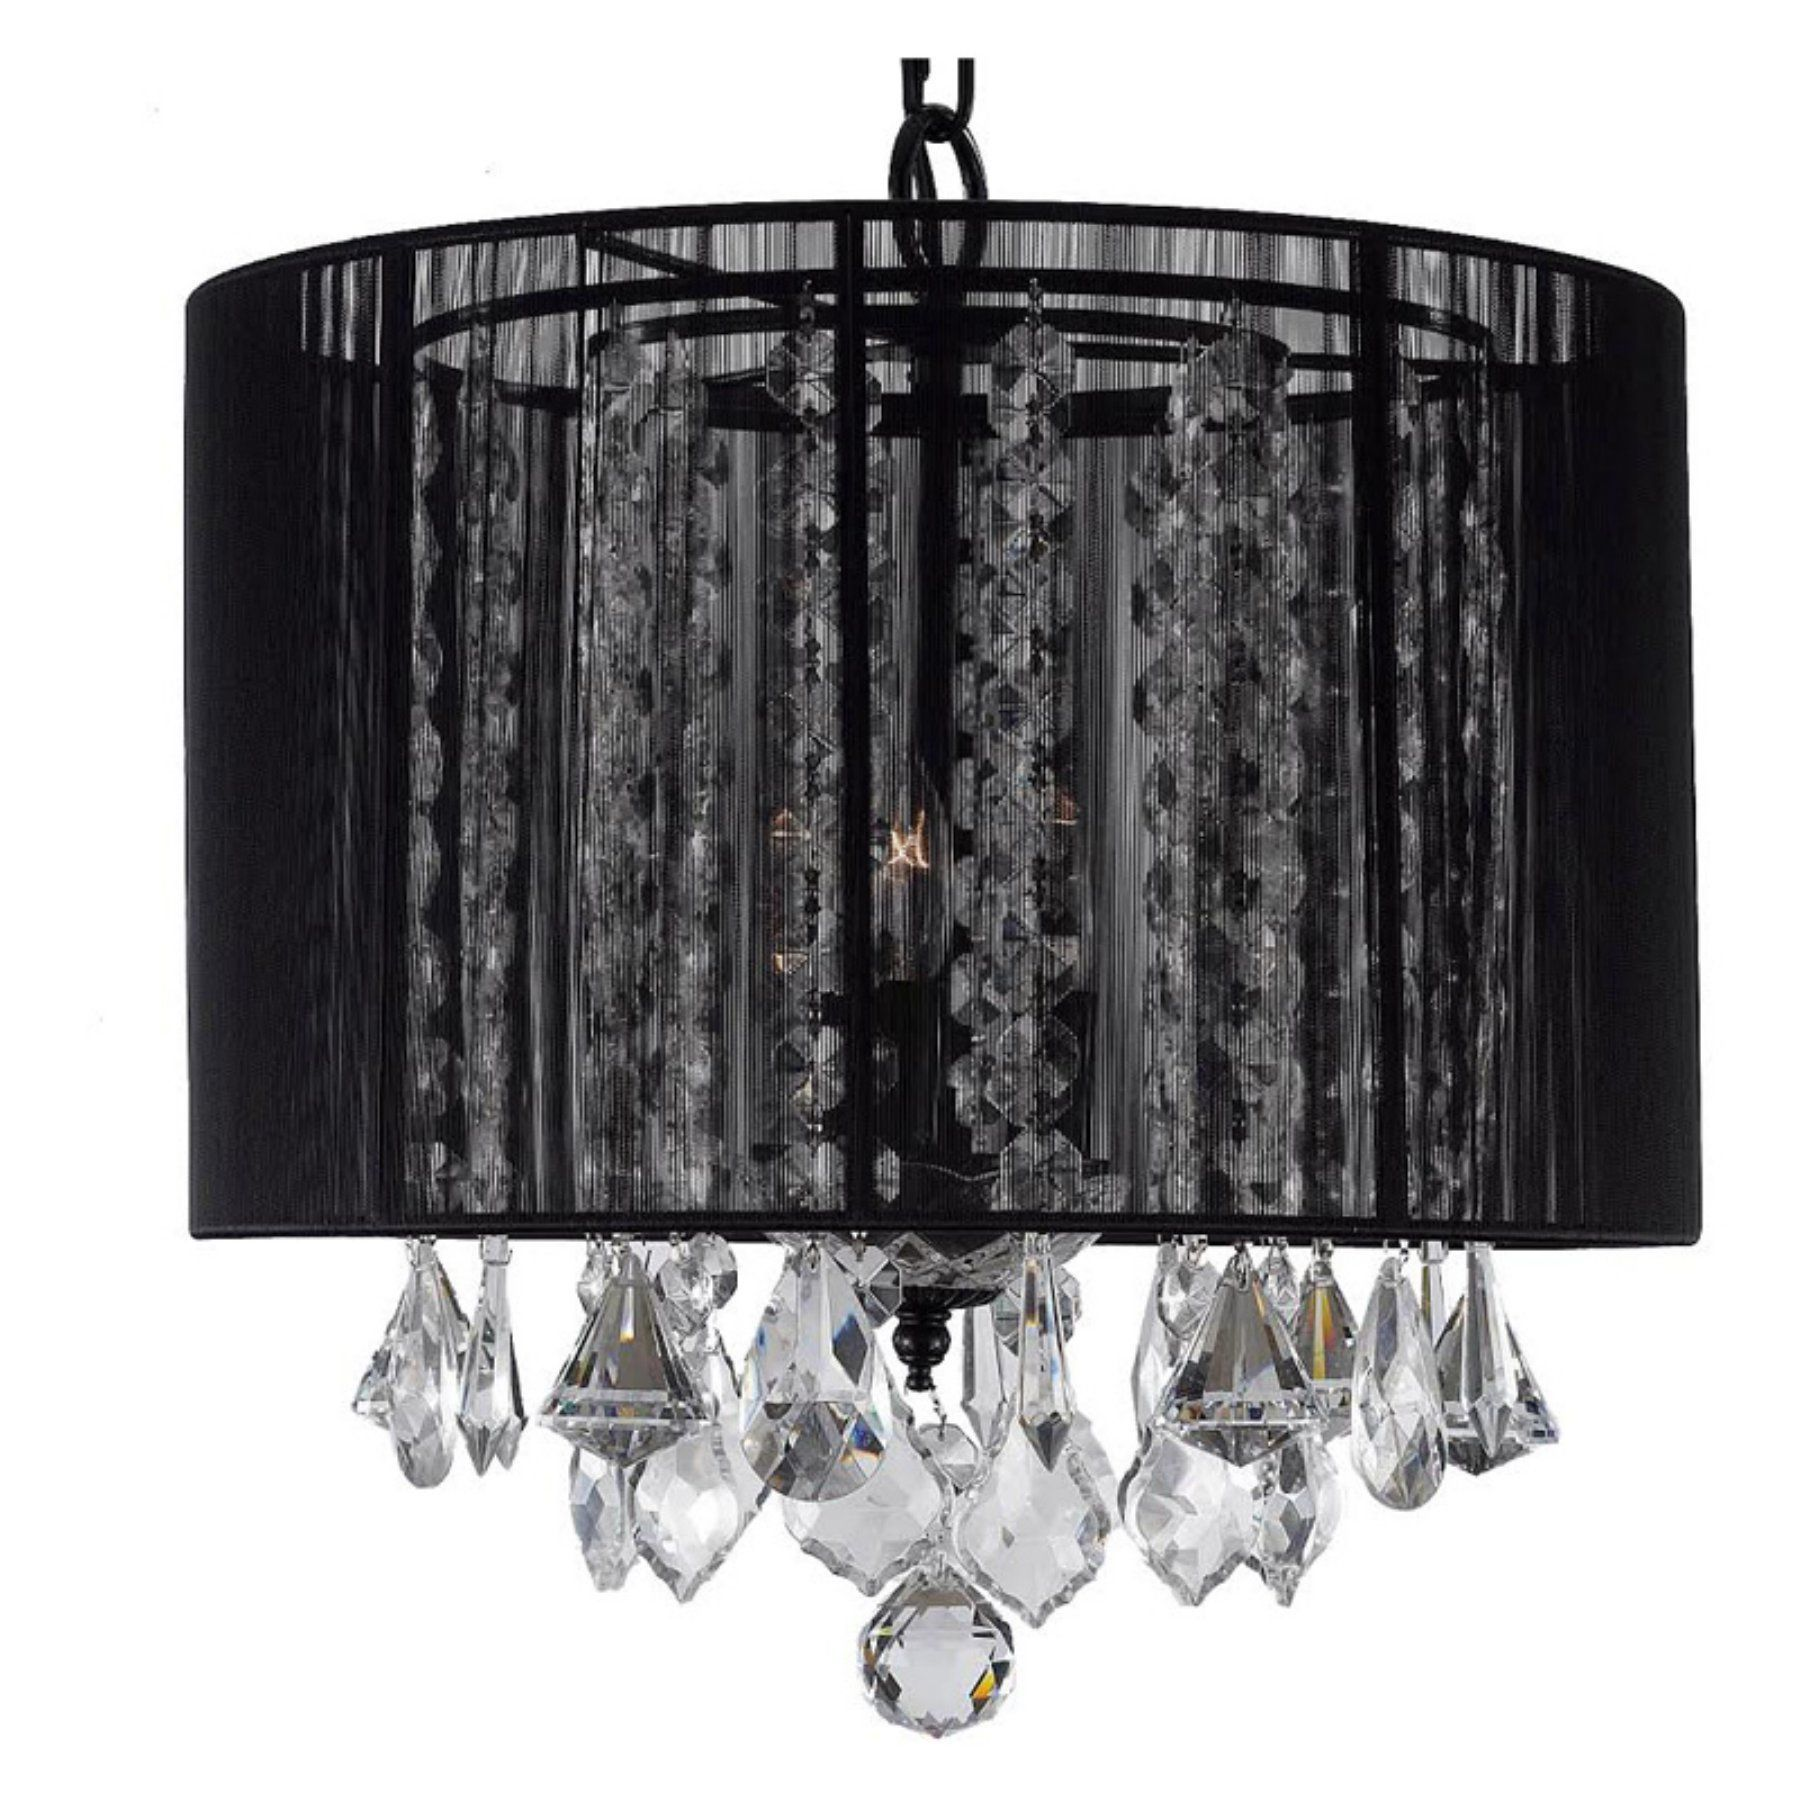 Harrison Lane T40 57 Chandelier T40 572 Products